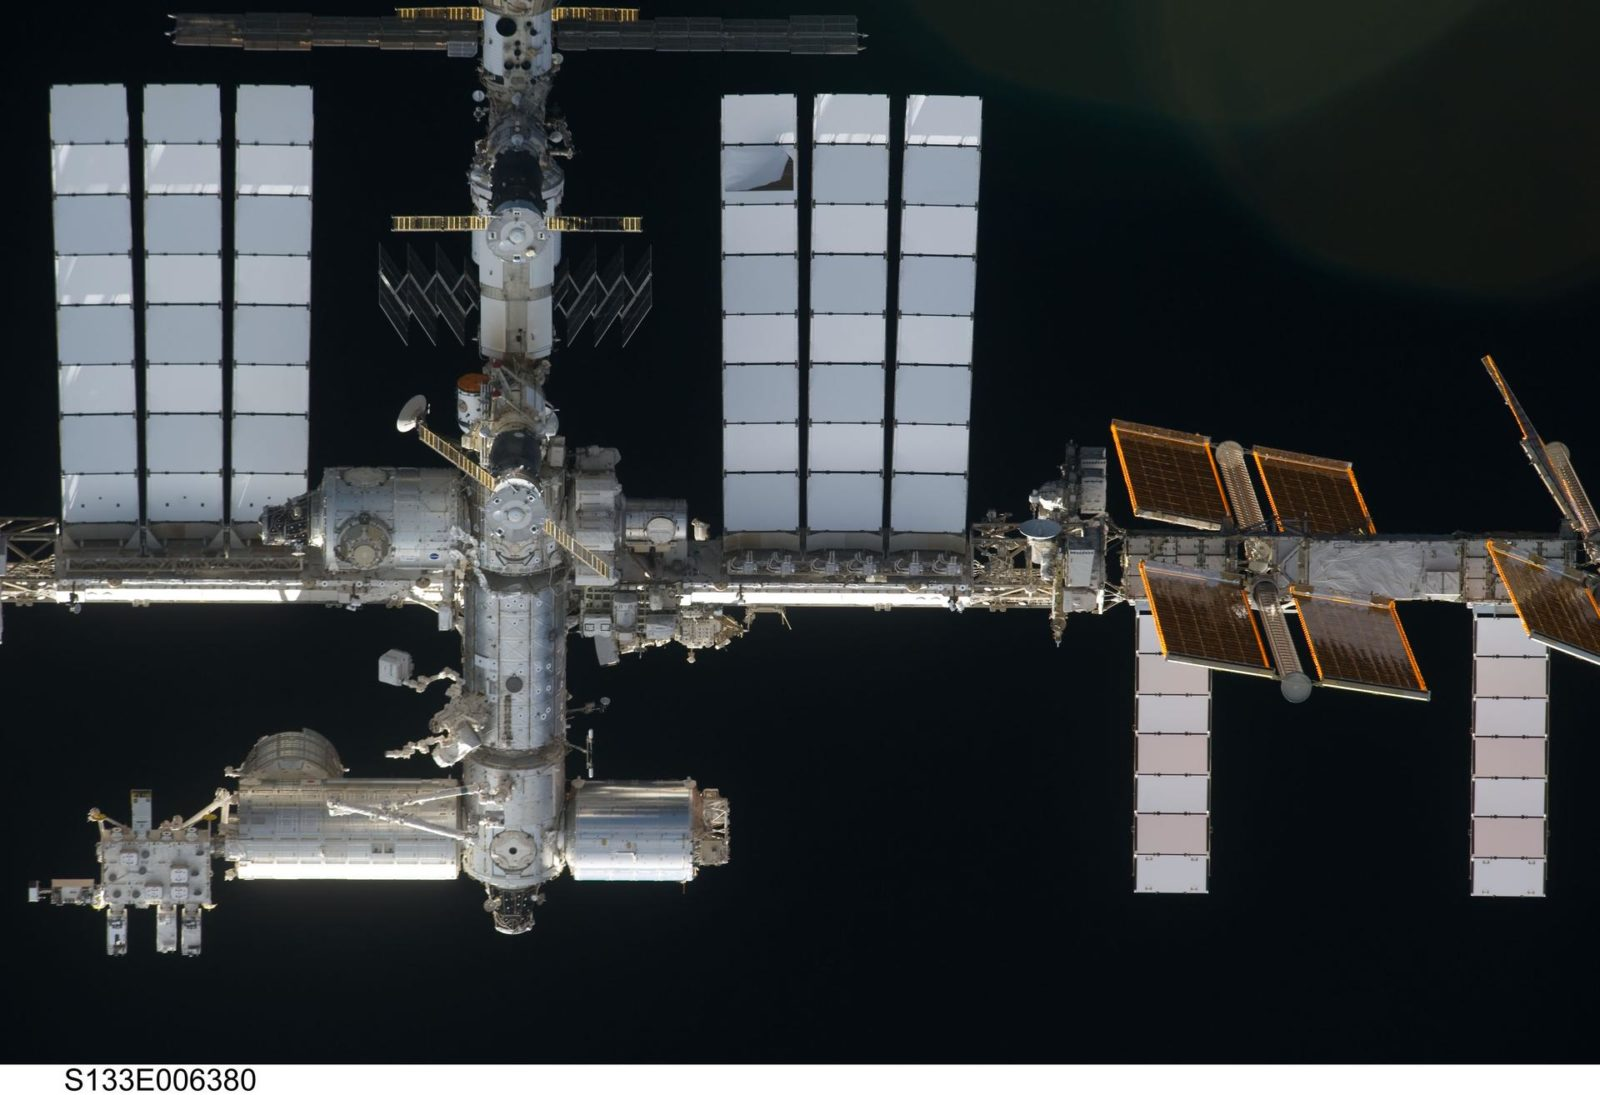 ISS during approach for docking